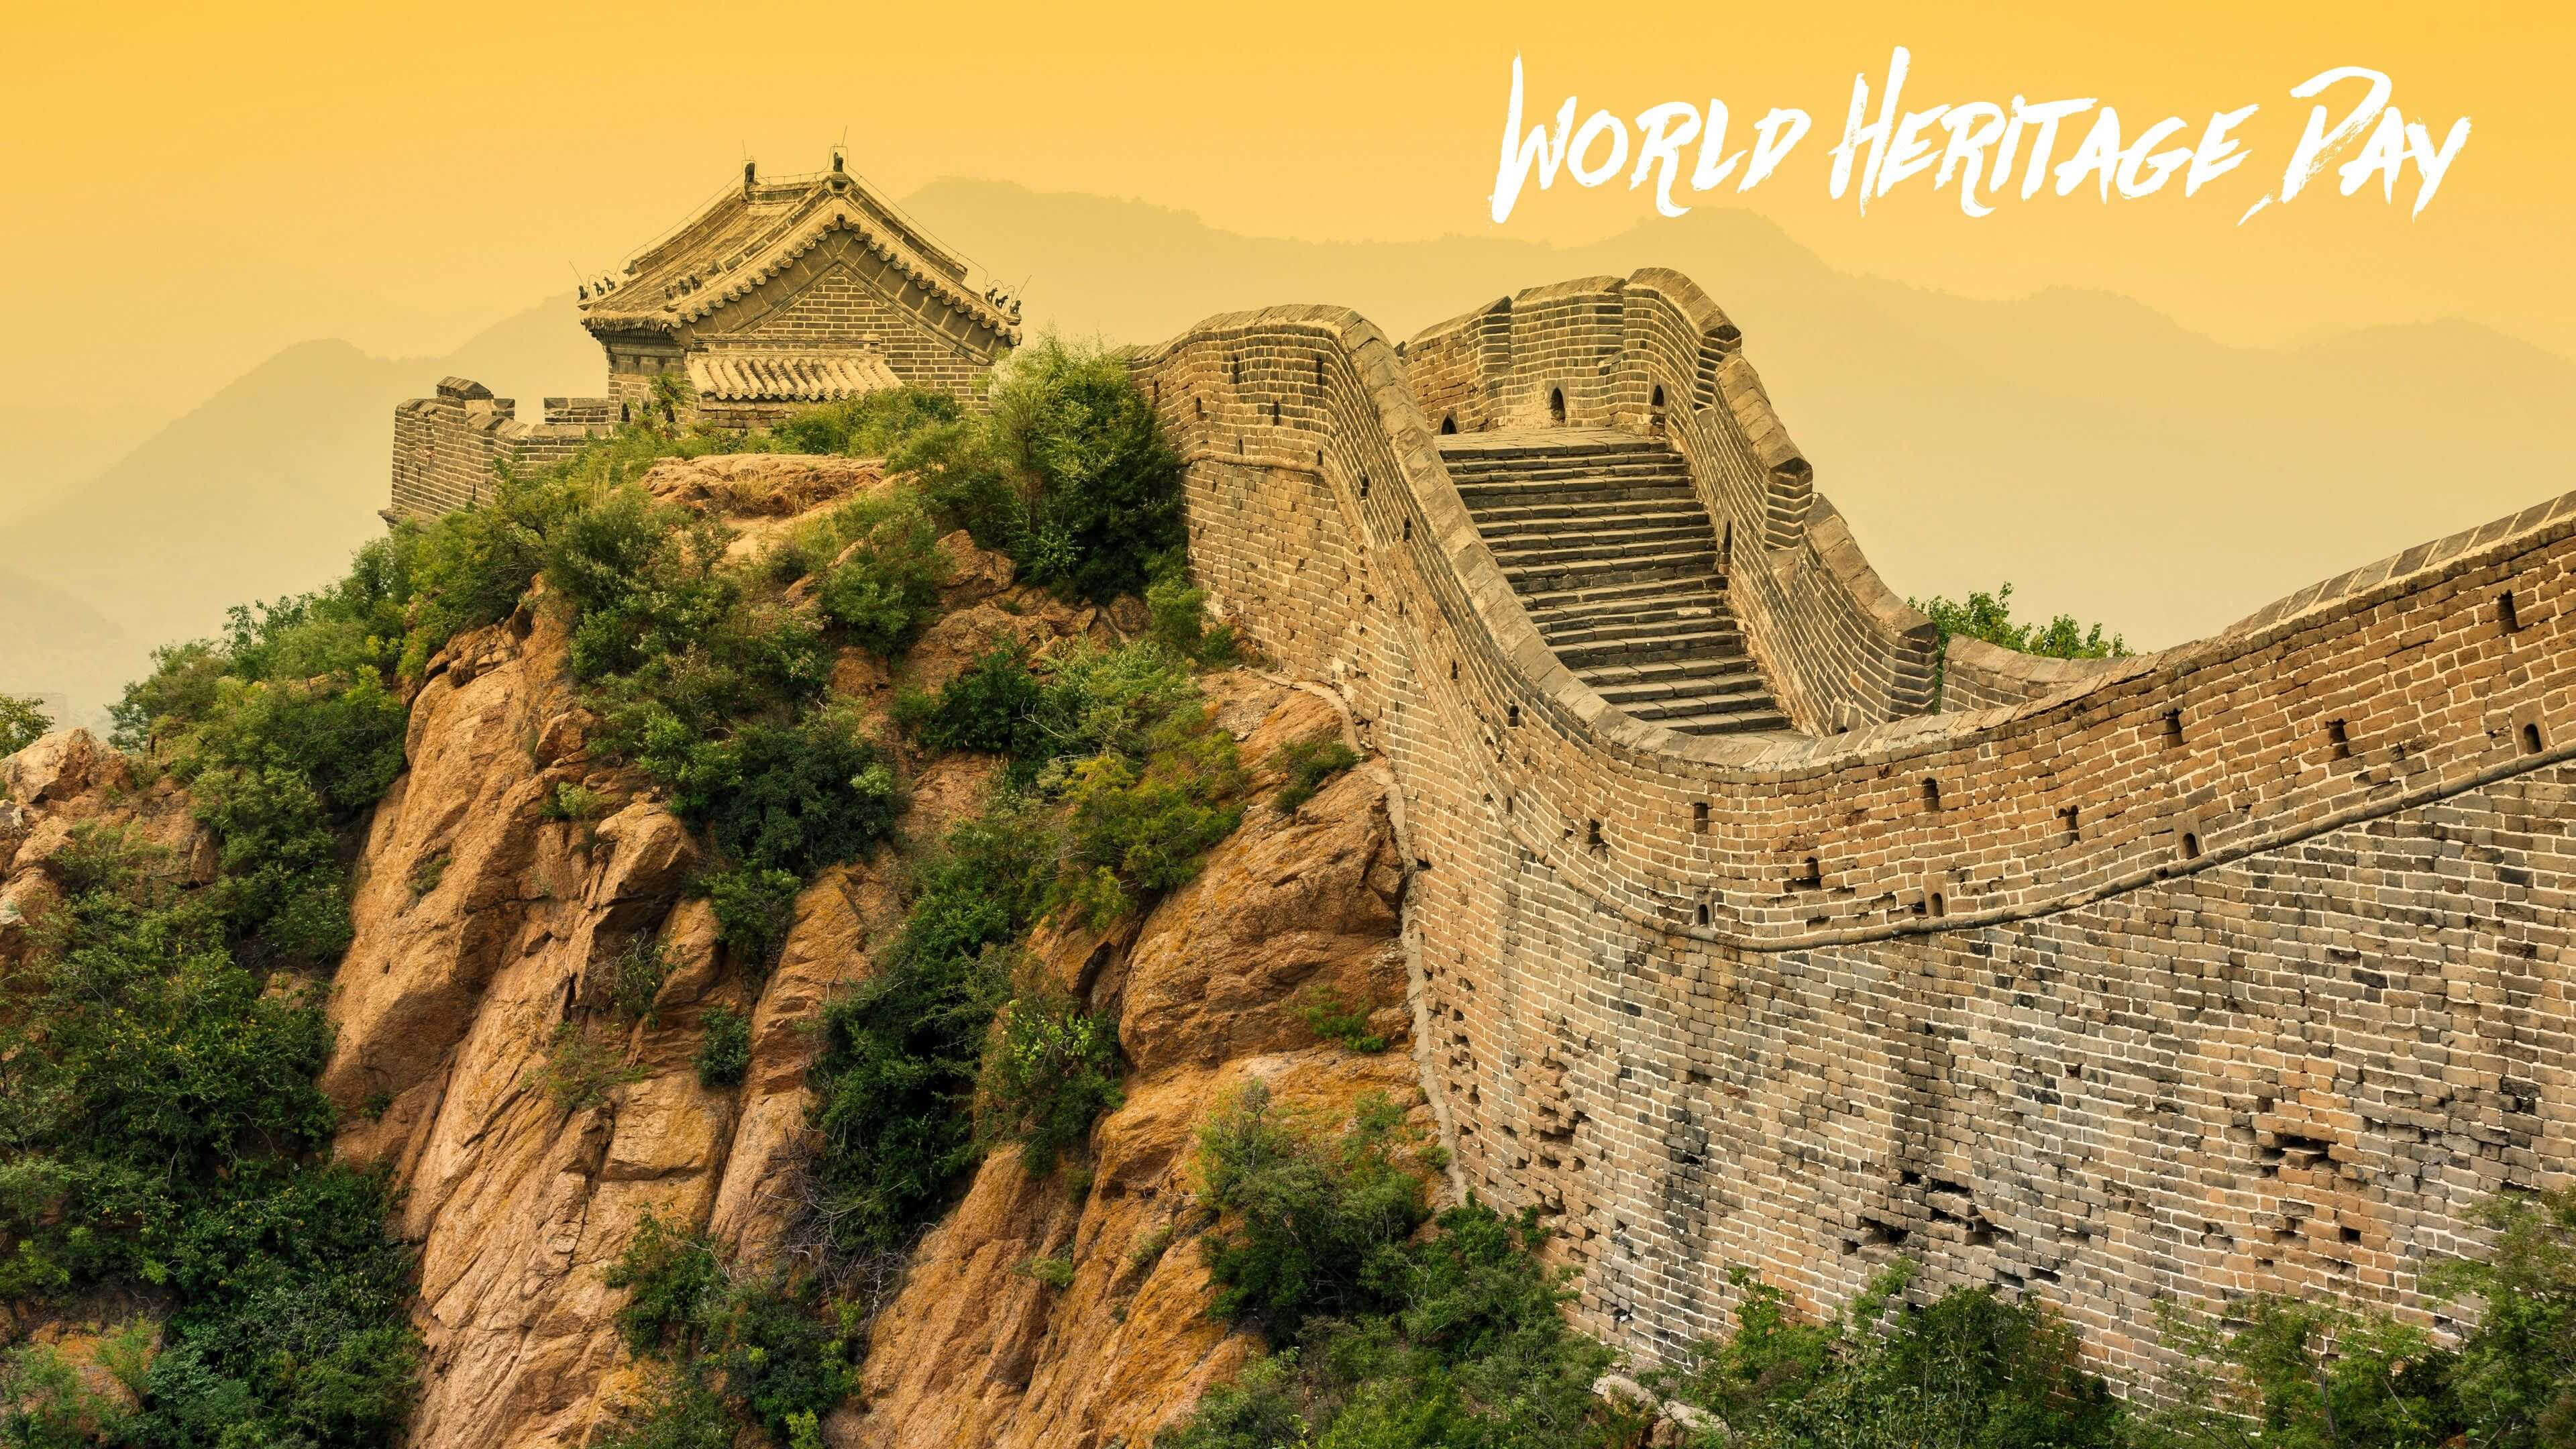 world heritage day 7 wonders great wall of china hd wallpaper